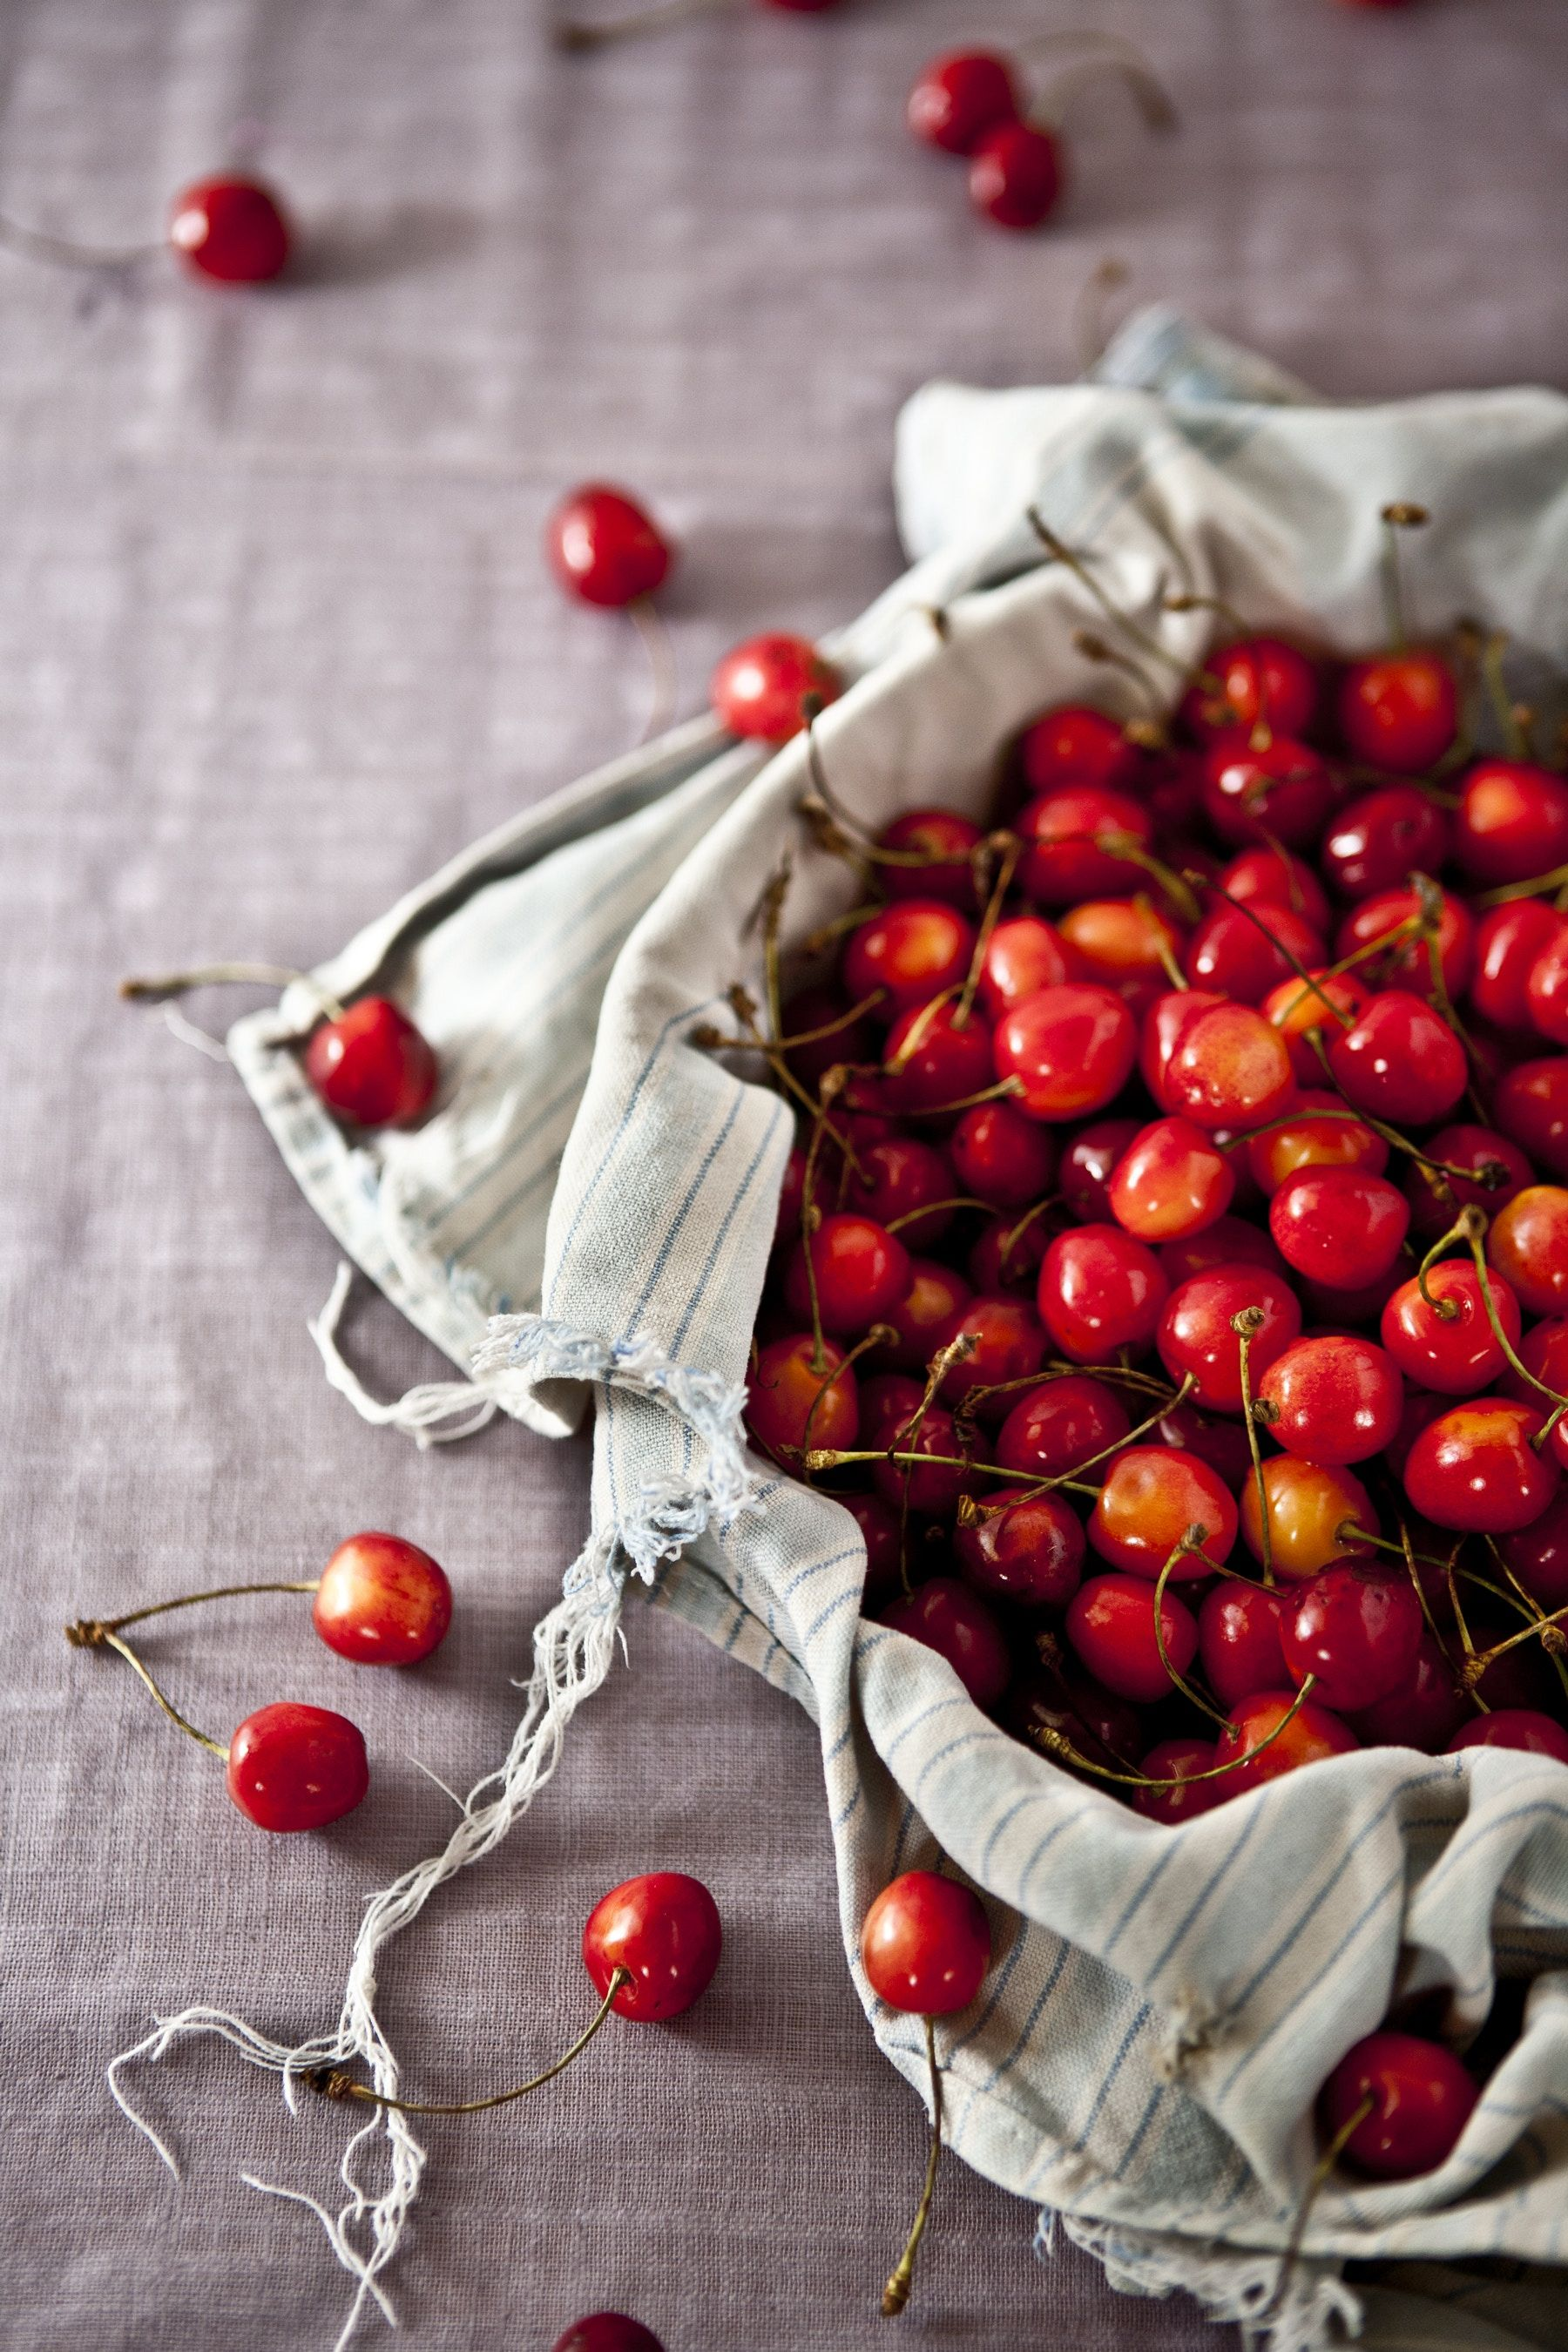 8 Wholesome Foods To Promote Better Sleep (With Images